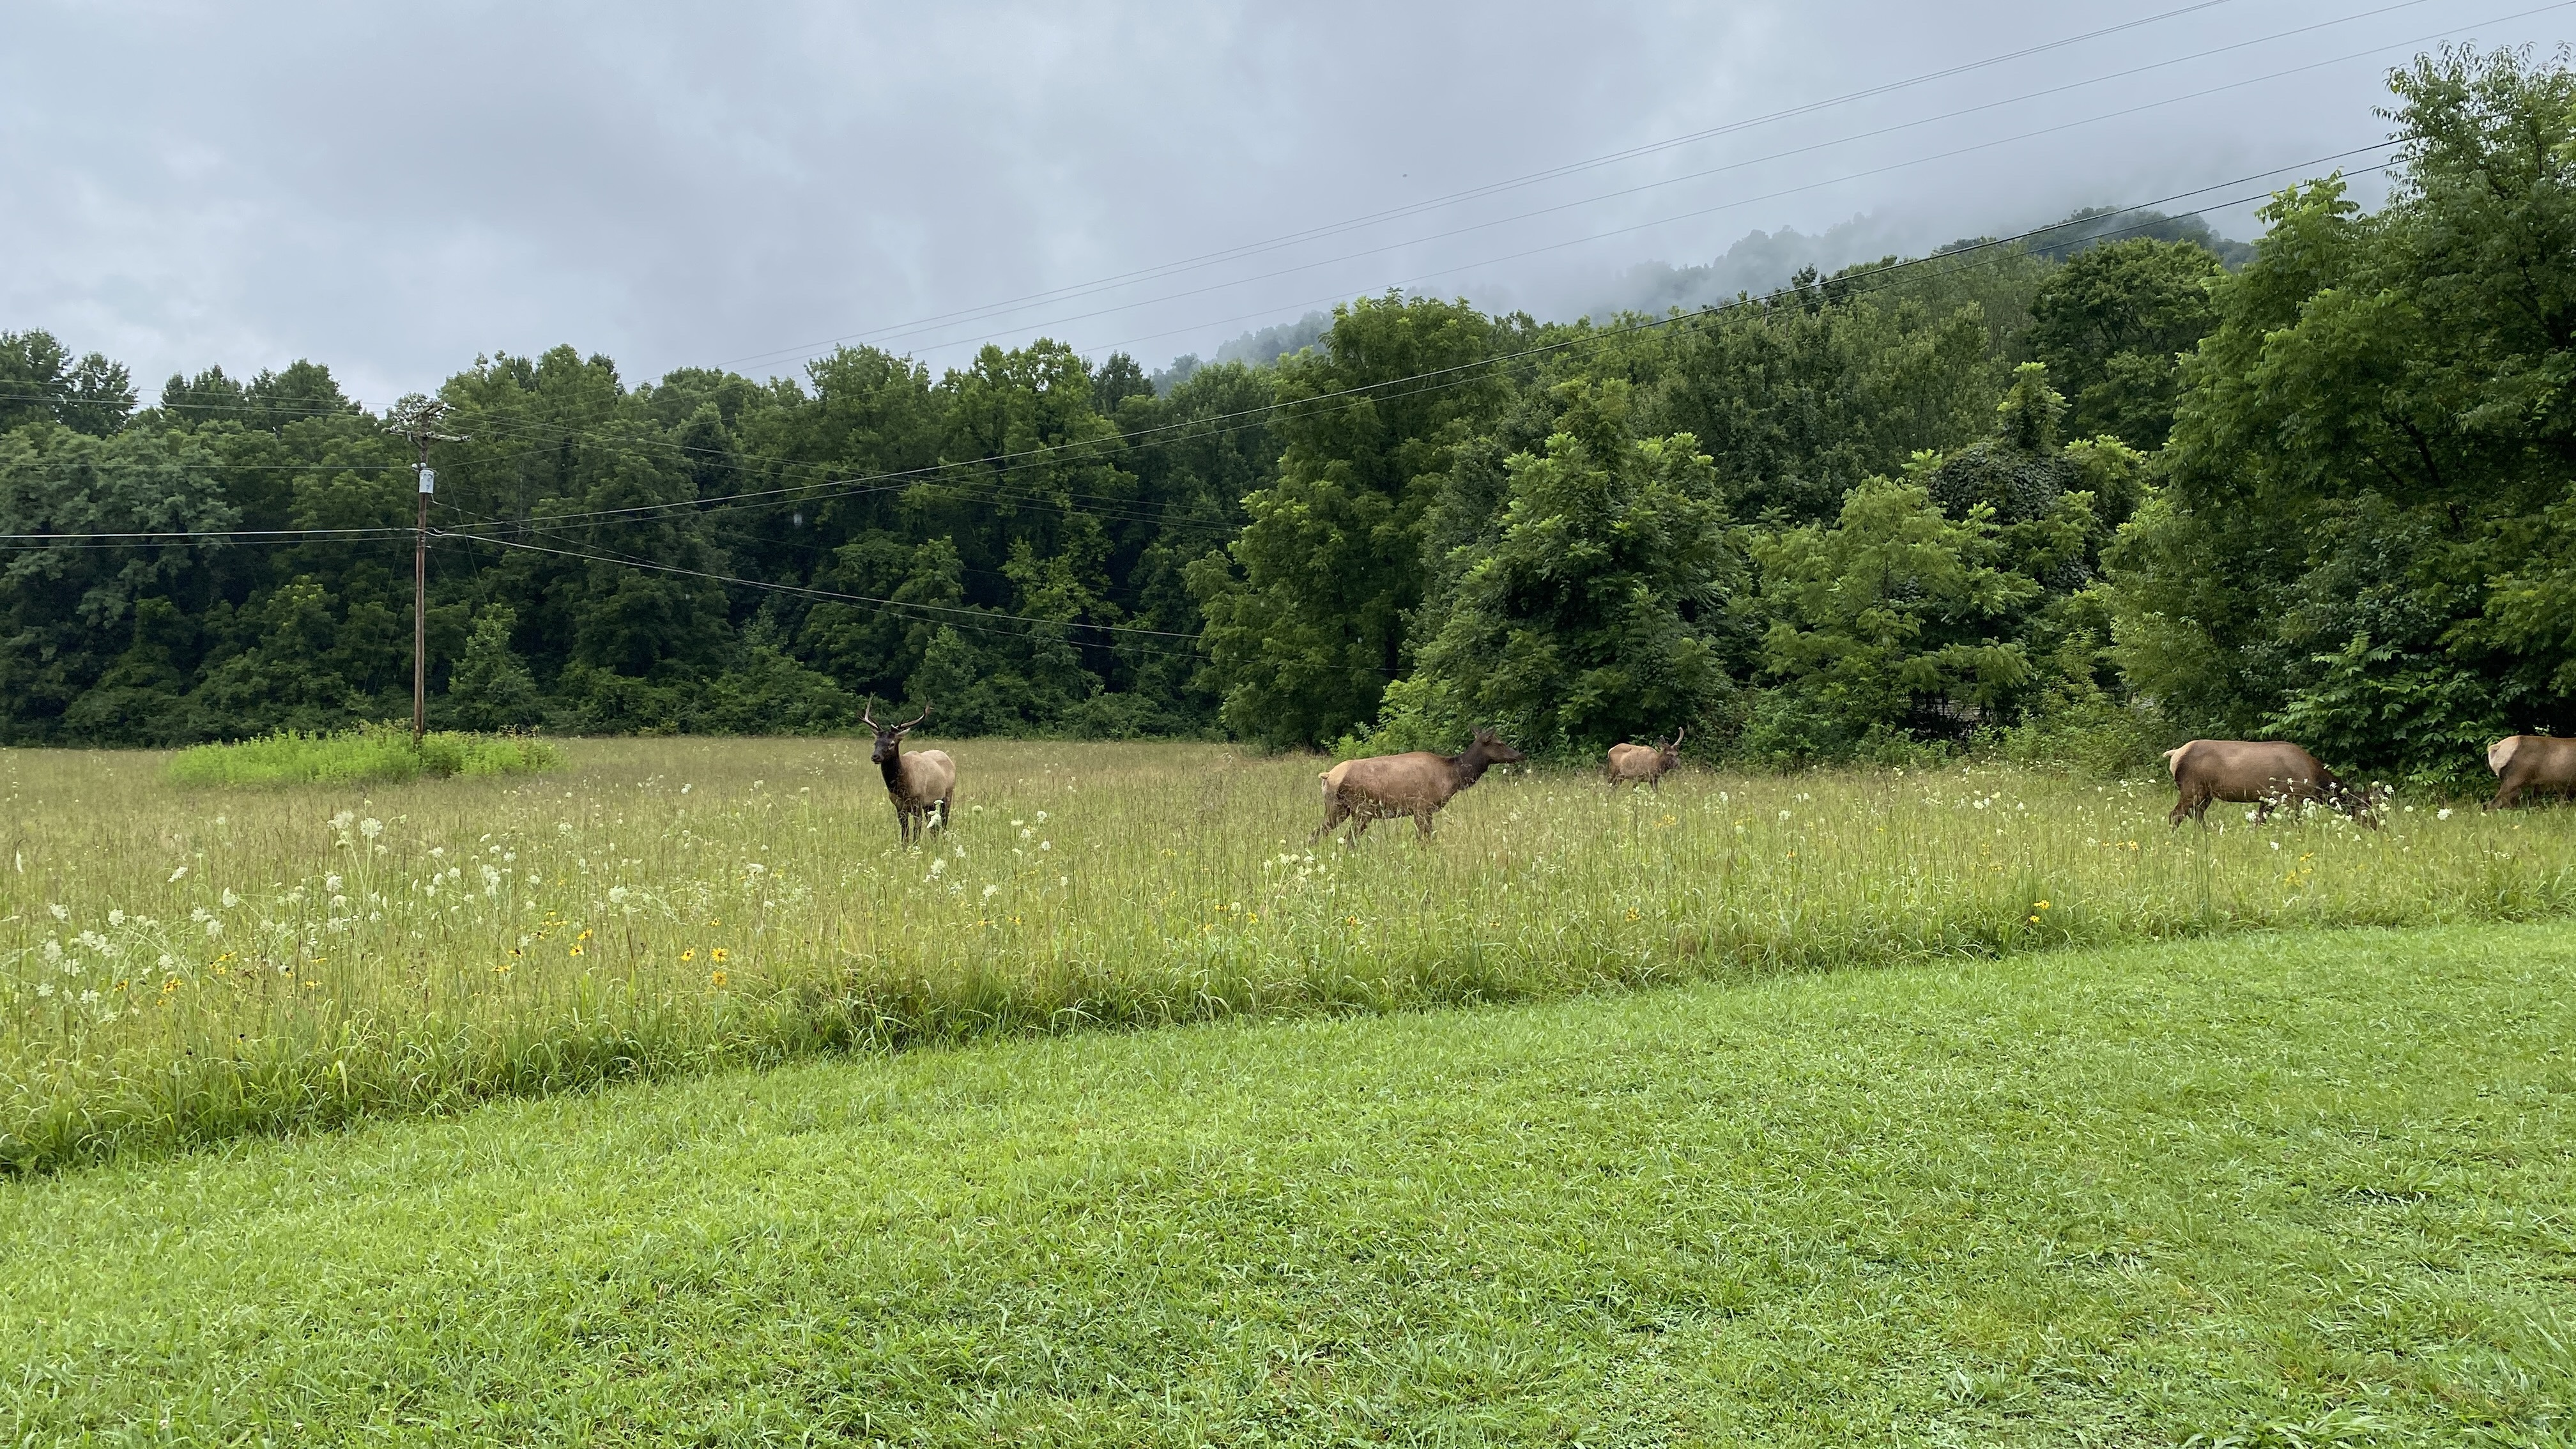 Five elk in a field of grasses and wildflowers